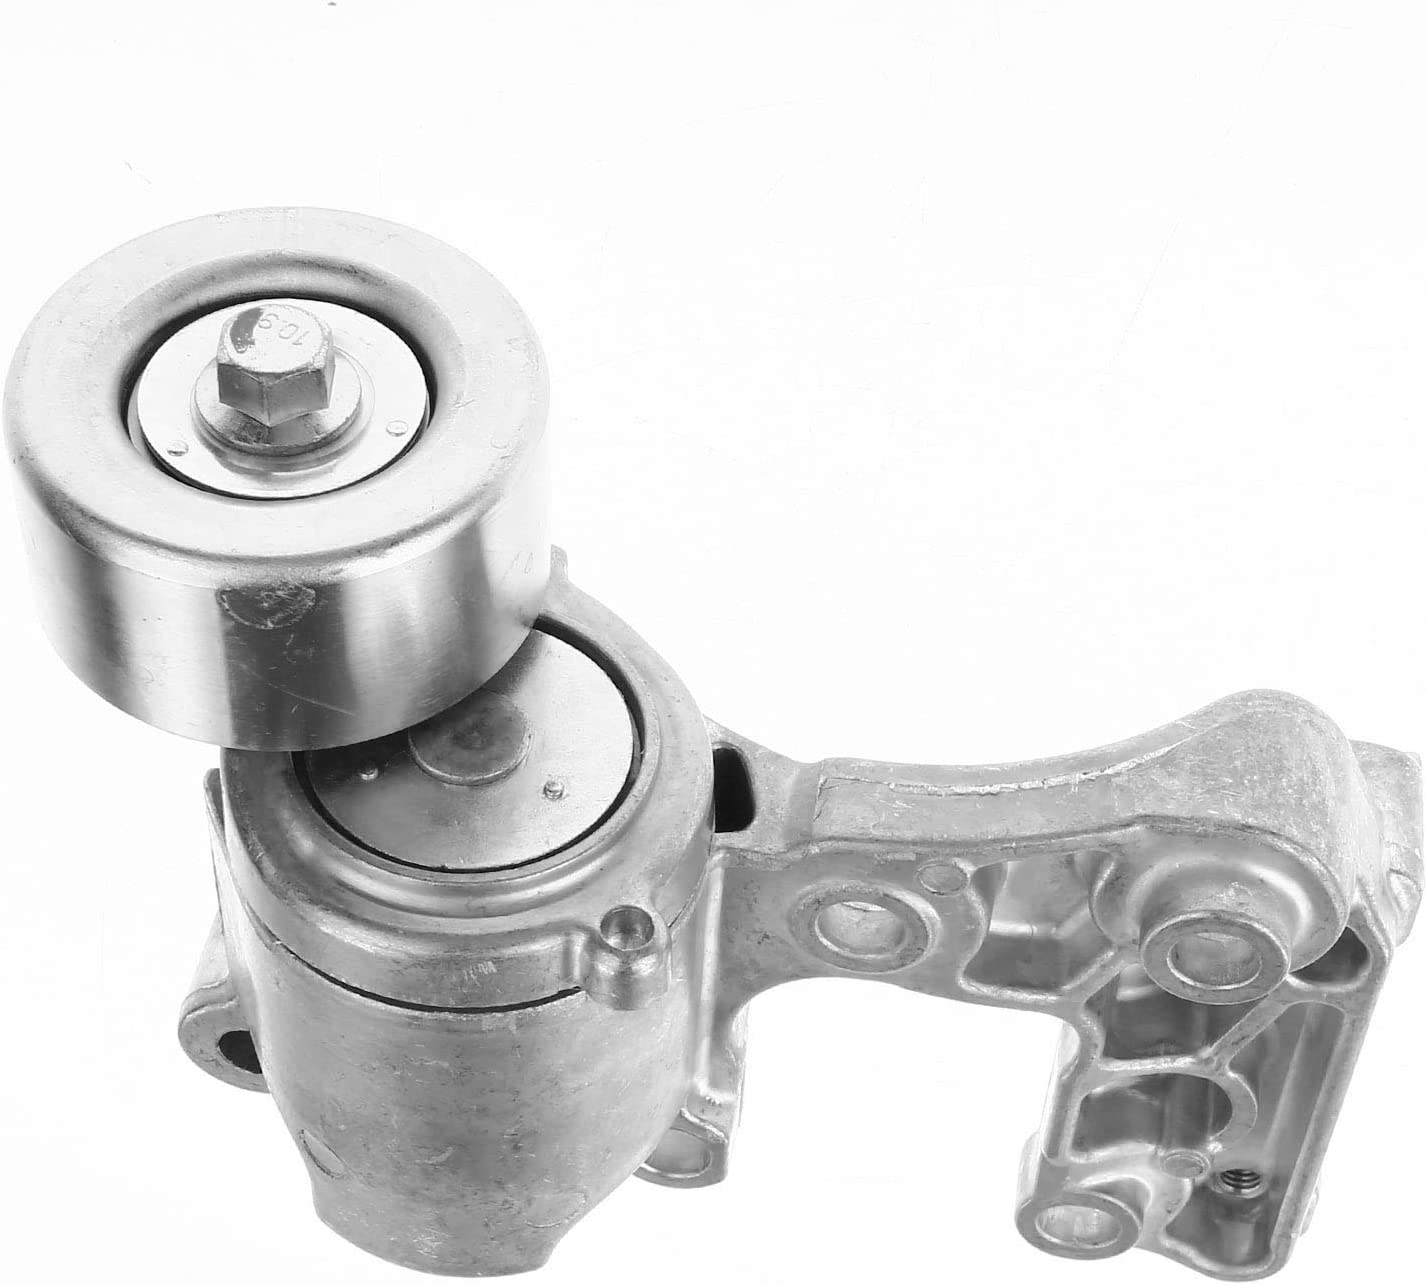 A-Premium Belt Tensioner Assembly Compatible with Toyota Camry 07-17 RAV4 06-12 Sienna 07-17 Venza 09-15 Fj Cruiser 2009-2015